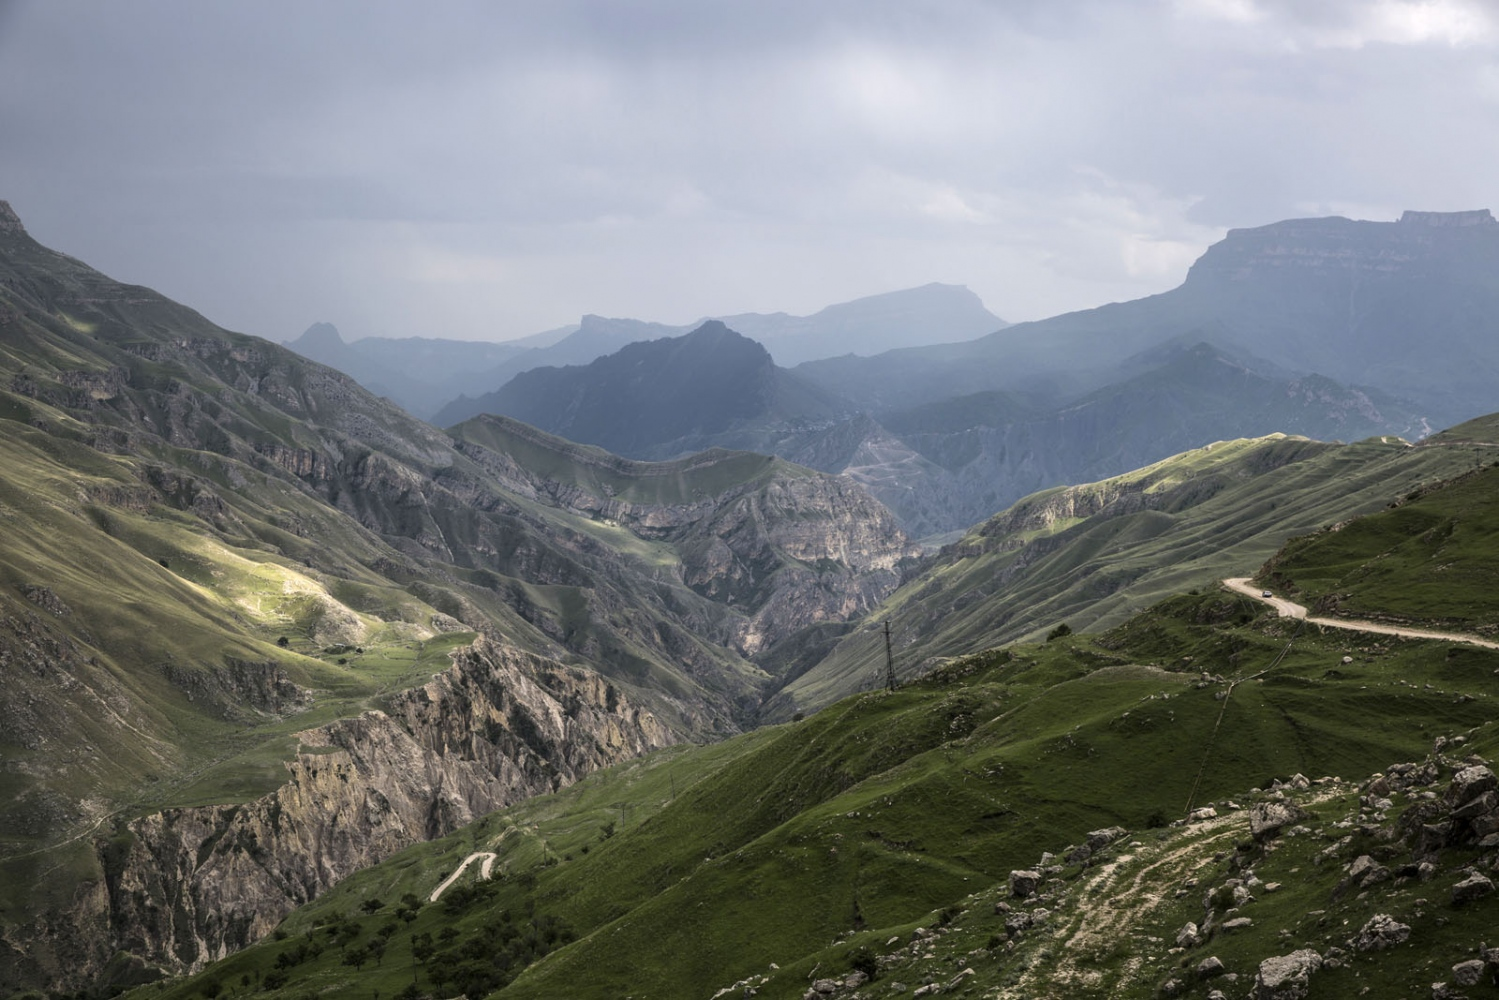 The view from the outskirts of the town of Khunzakh which is located on a rocky plateau. Dagestan, Russia